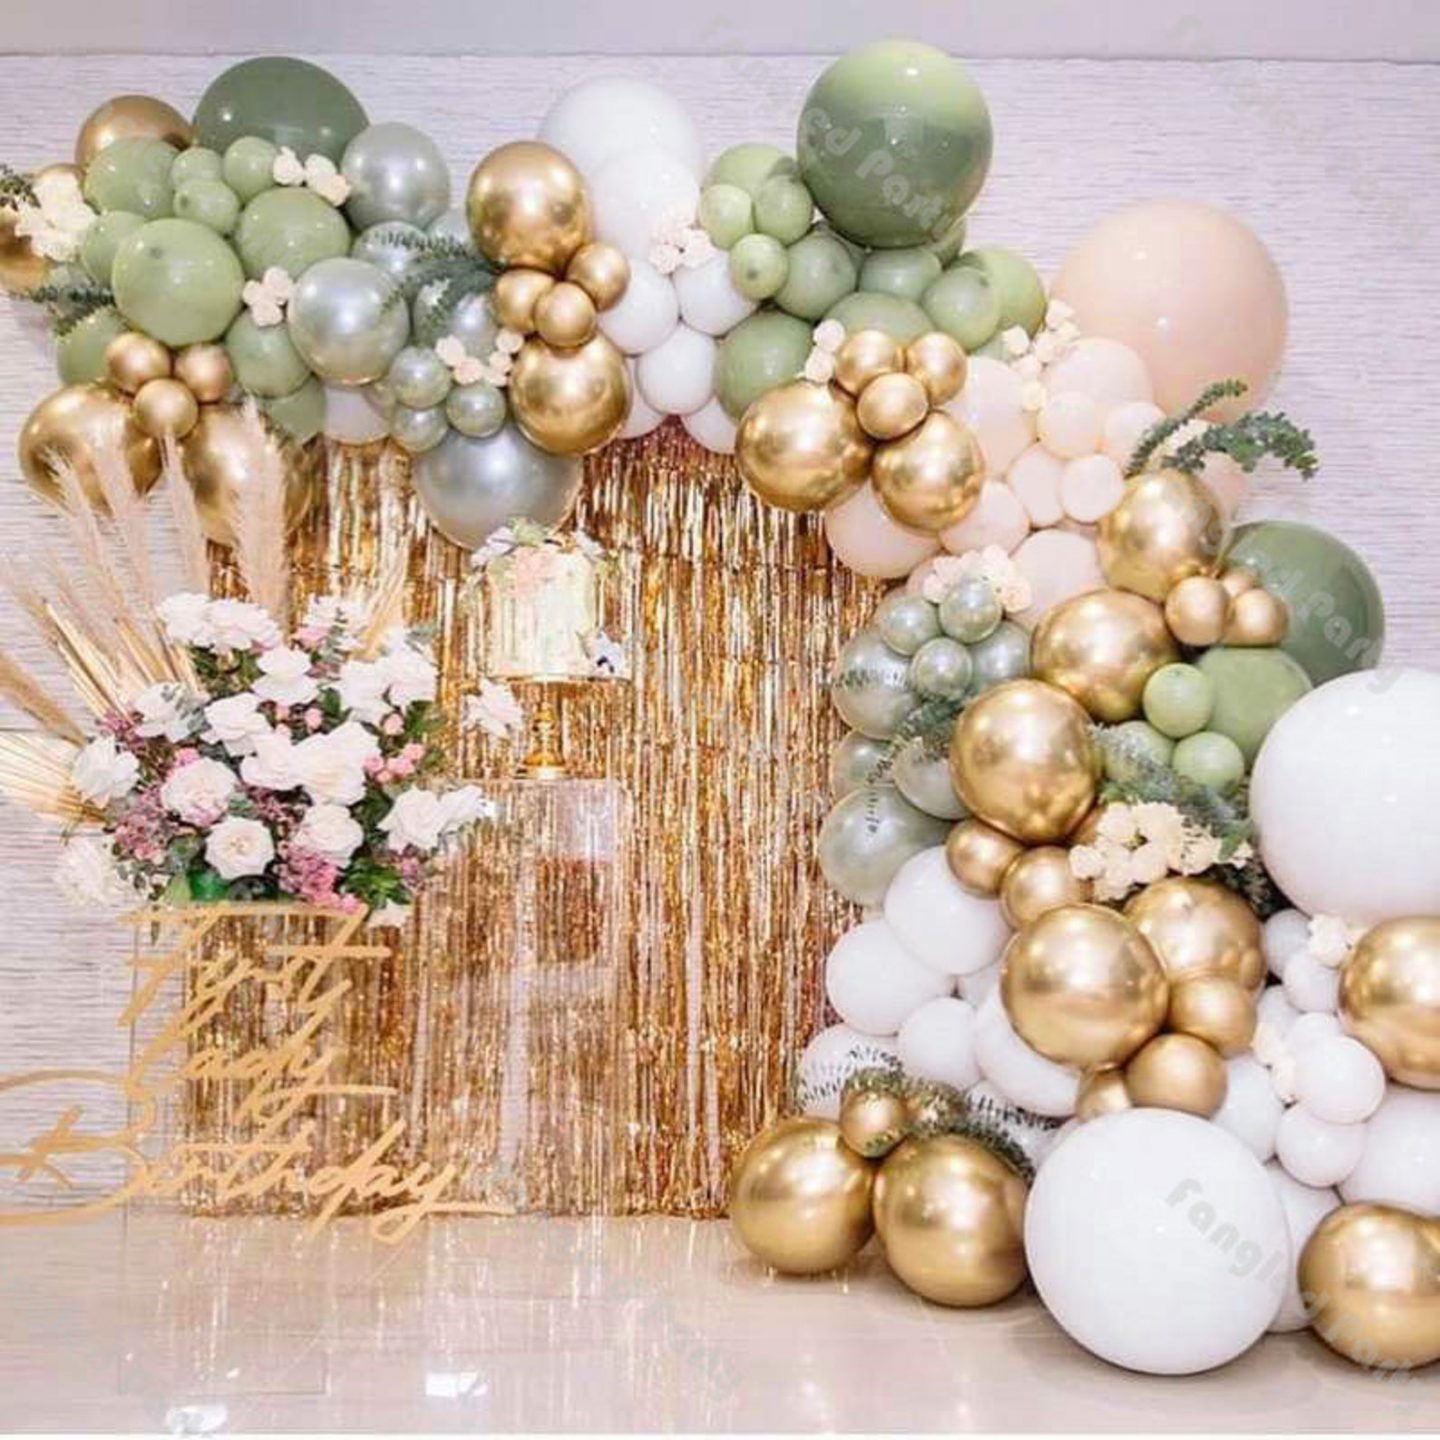 White, gold and sage green birthday balloons with a gold fringed curtain